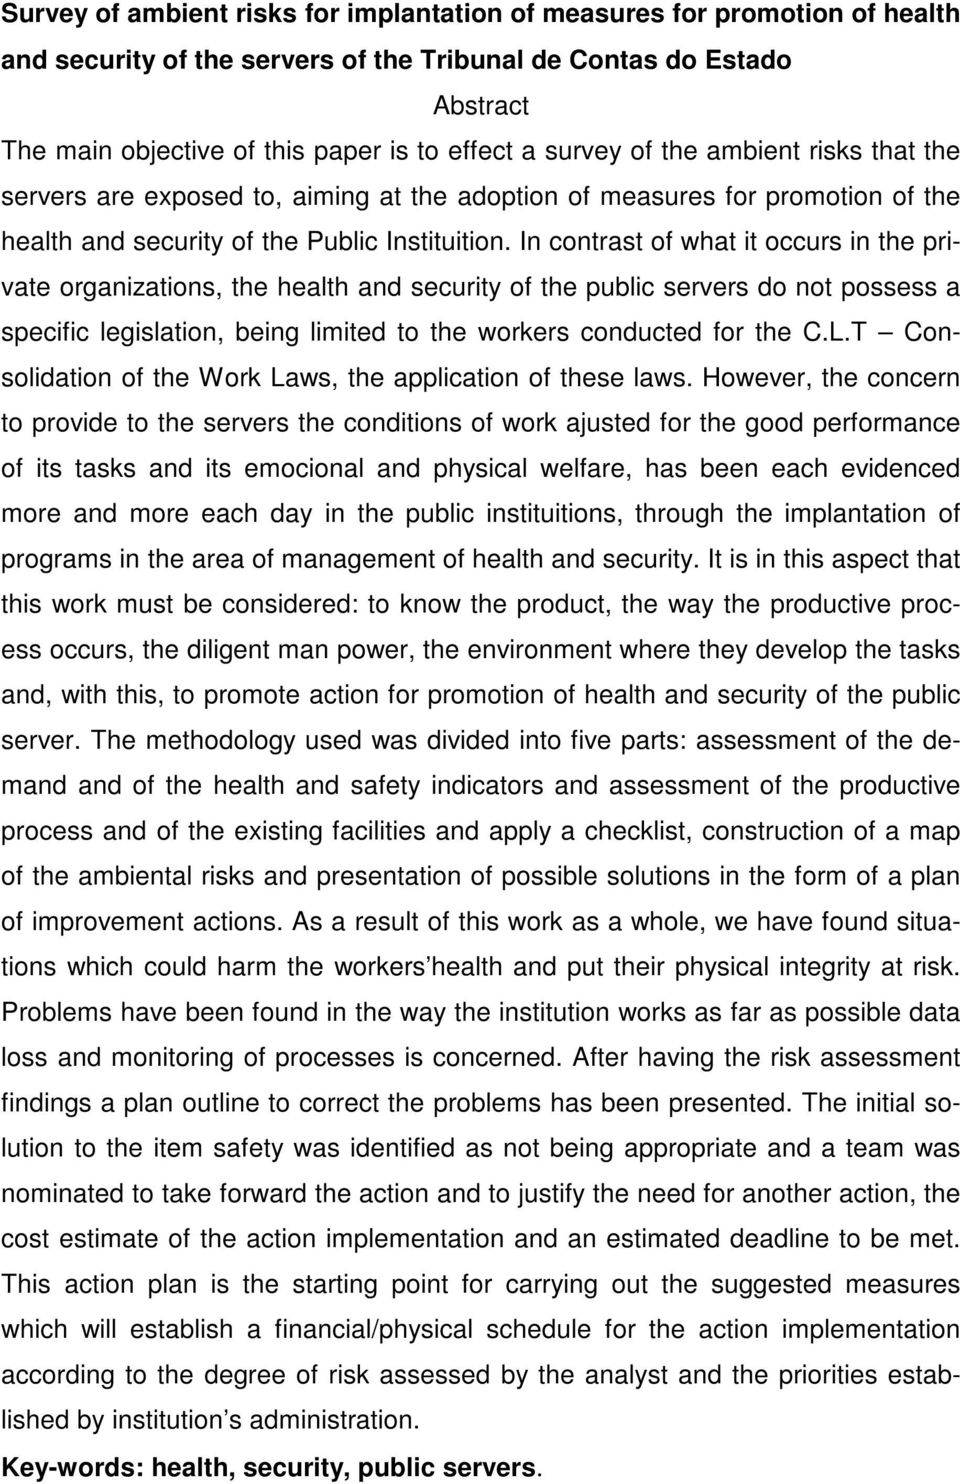 In contrast of what it occurs in the private organizations, the health and security of the public servers do not possess a specific legislation, being limited to the workers conducted for the C.L.